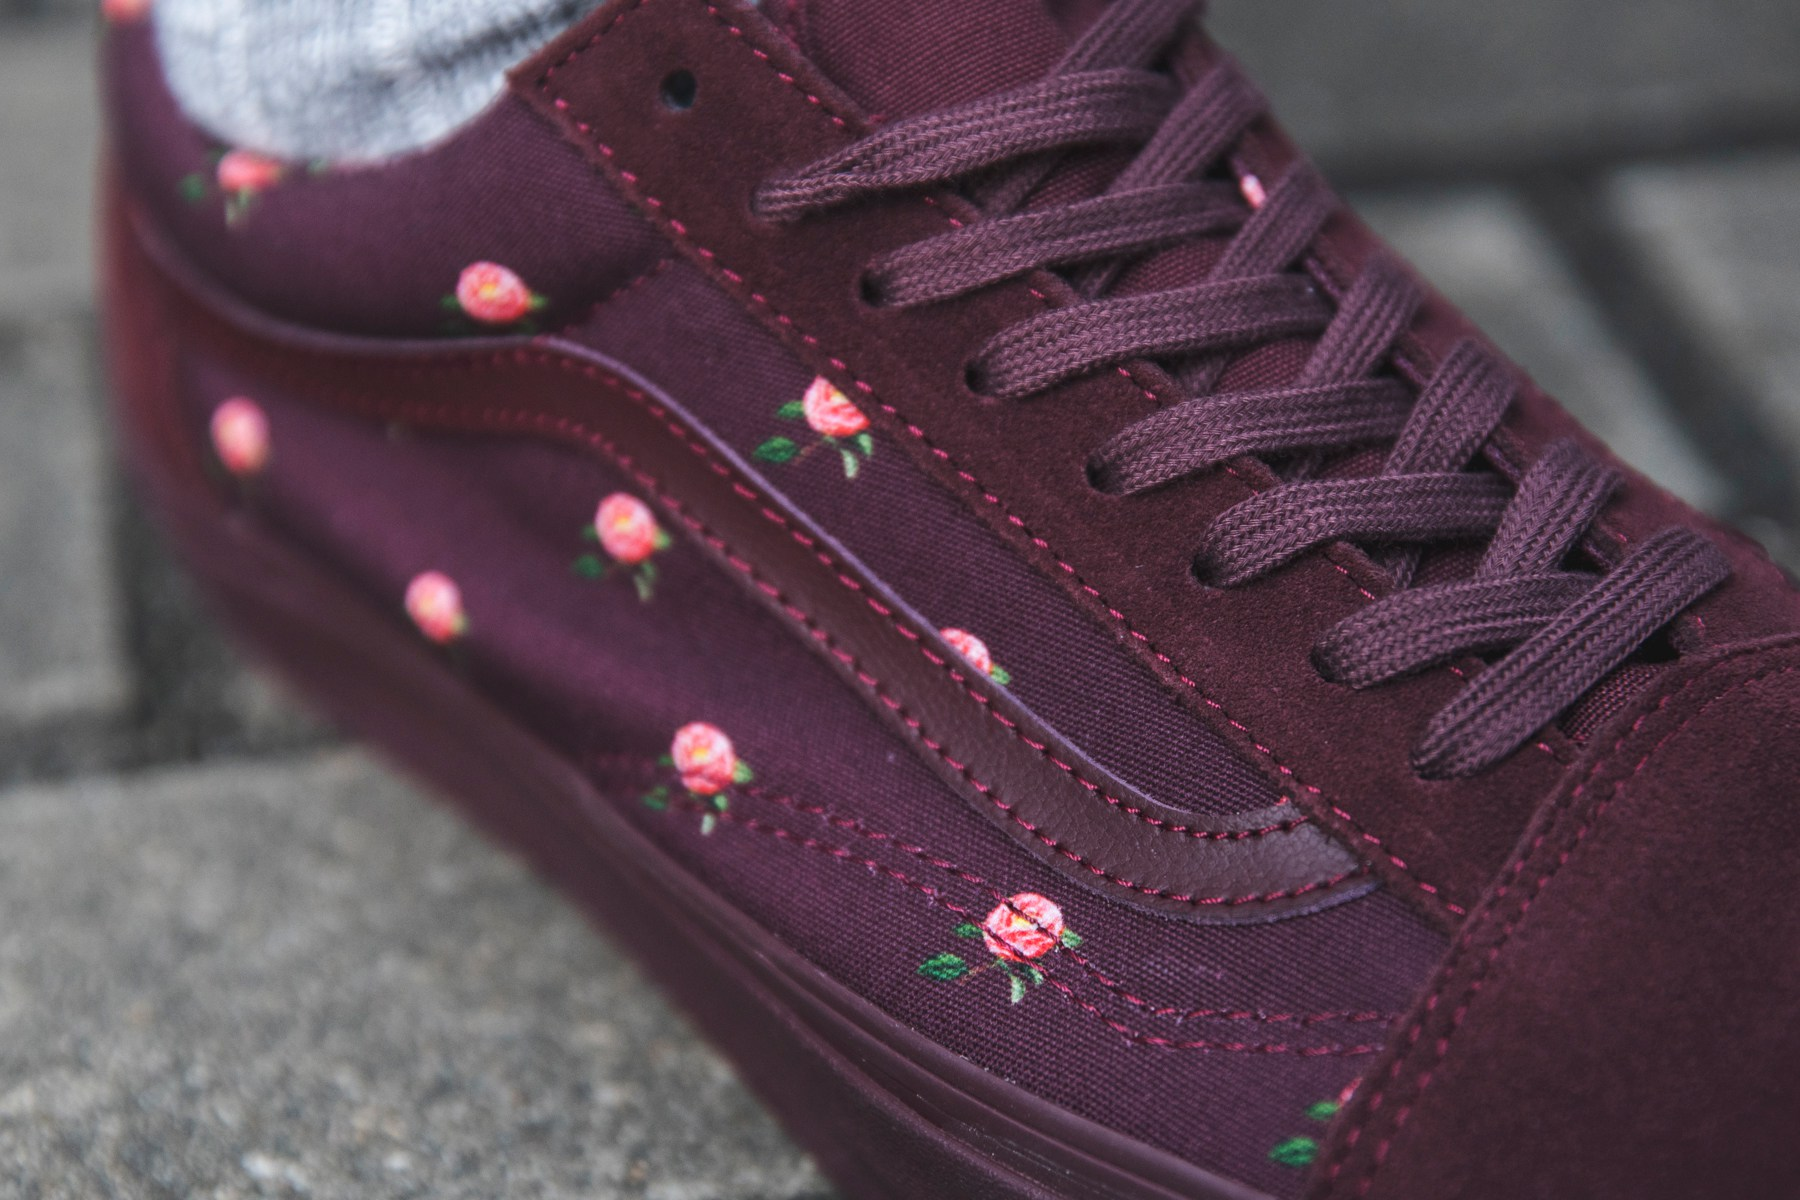 undercover-vans-2017-collaboration-368-06